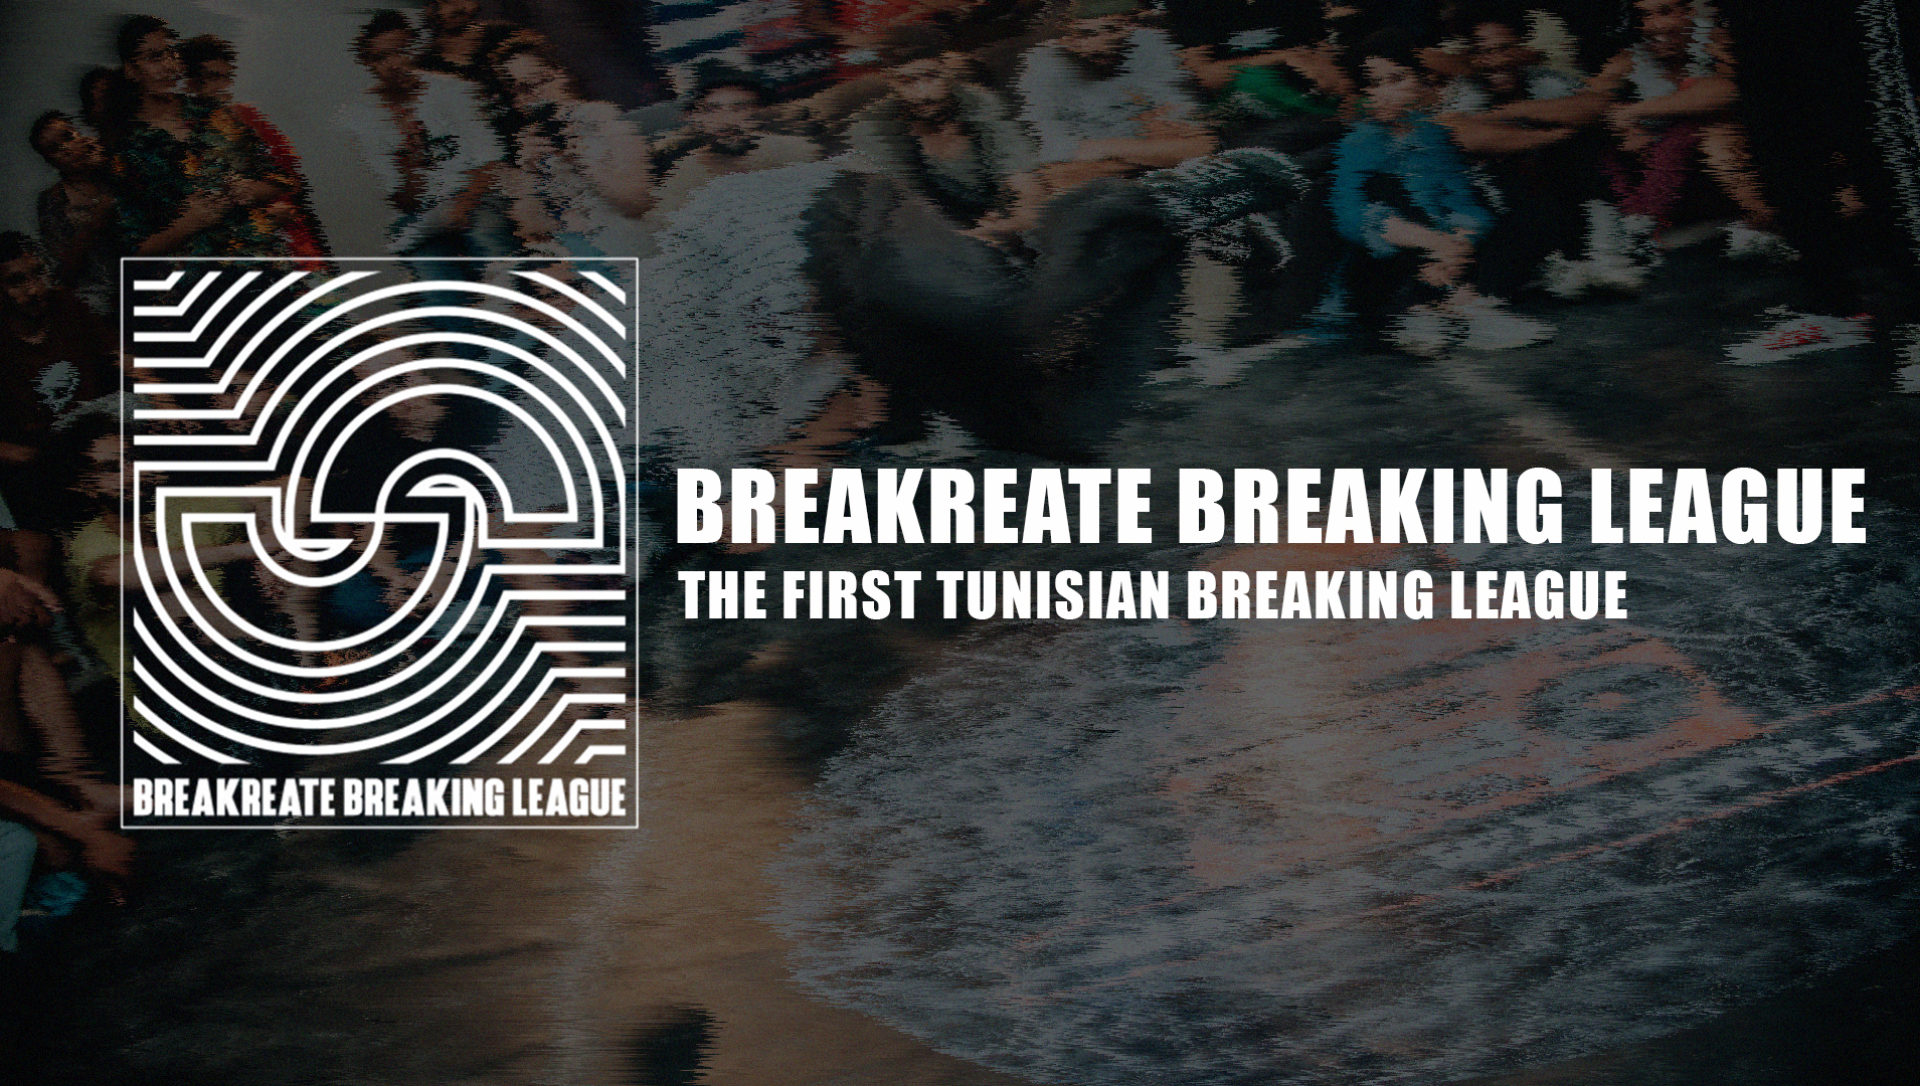 Breakreate Breaking League: The First Breaking League in Tunisia